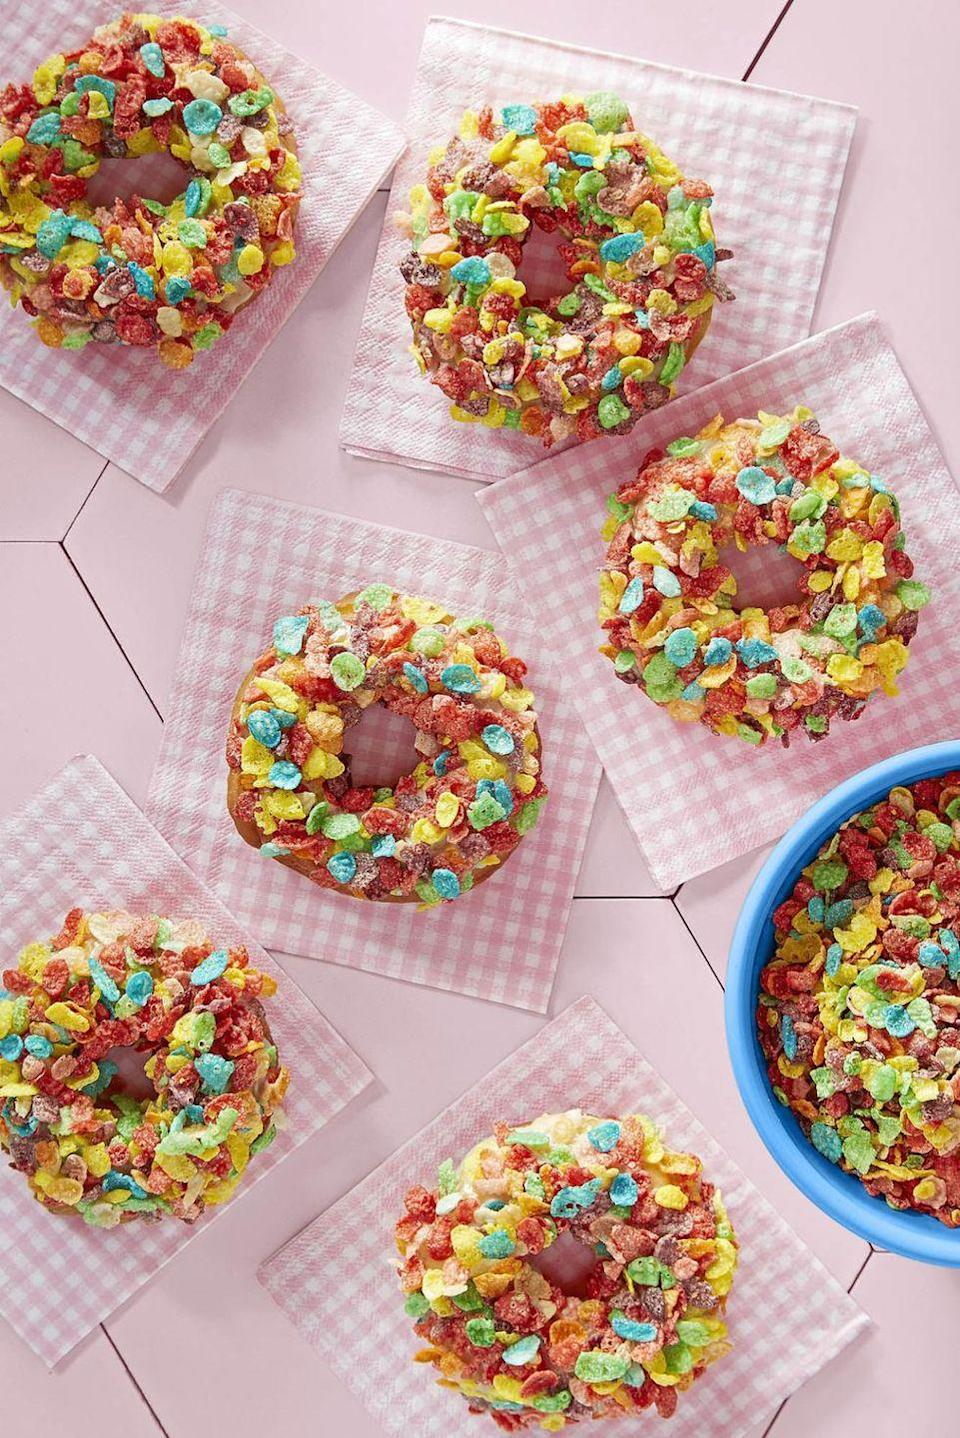 """<p>Two breakfast favorites collide to create our new favorite morning treat. Mom will feel like a kid at heart indulging in these delicious donuts.</p><p><strong><a href=""""https://www.countryliving.com/food-drinks/recipes/a46352/fruity-pebbles-doughnuts-recipe/"""" rel=""""nofollow noopener"""" target=""""_blank"""" data-ylk=""""slk:Get the recipe"""" class=""""link rapid-noclick-resp"""">Get the recipe</a>.</strong></p><p><a class=""""link rapid-noclick-resp"""" href=""""https://www.amazon.com/Lodge-Enameled-Classic-Enamel-Island/dp/B000N501BK?tag=syn-yahoo-20&ascsubtag=%5Bartid%7C10050.g.4238%5Bsrc%7Cyahoo-us"""" rel=""""nofollow noopener"""" target=""""_blank"""" data-ylk=""""slk:SHOP DUTCH OVENS"""">SHOP DUTCH OVENS</a> </p>"""